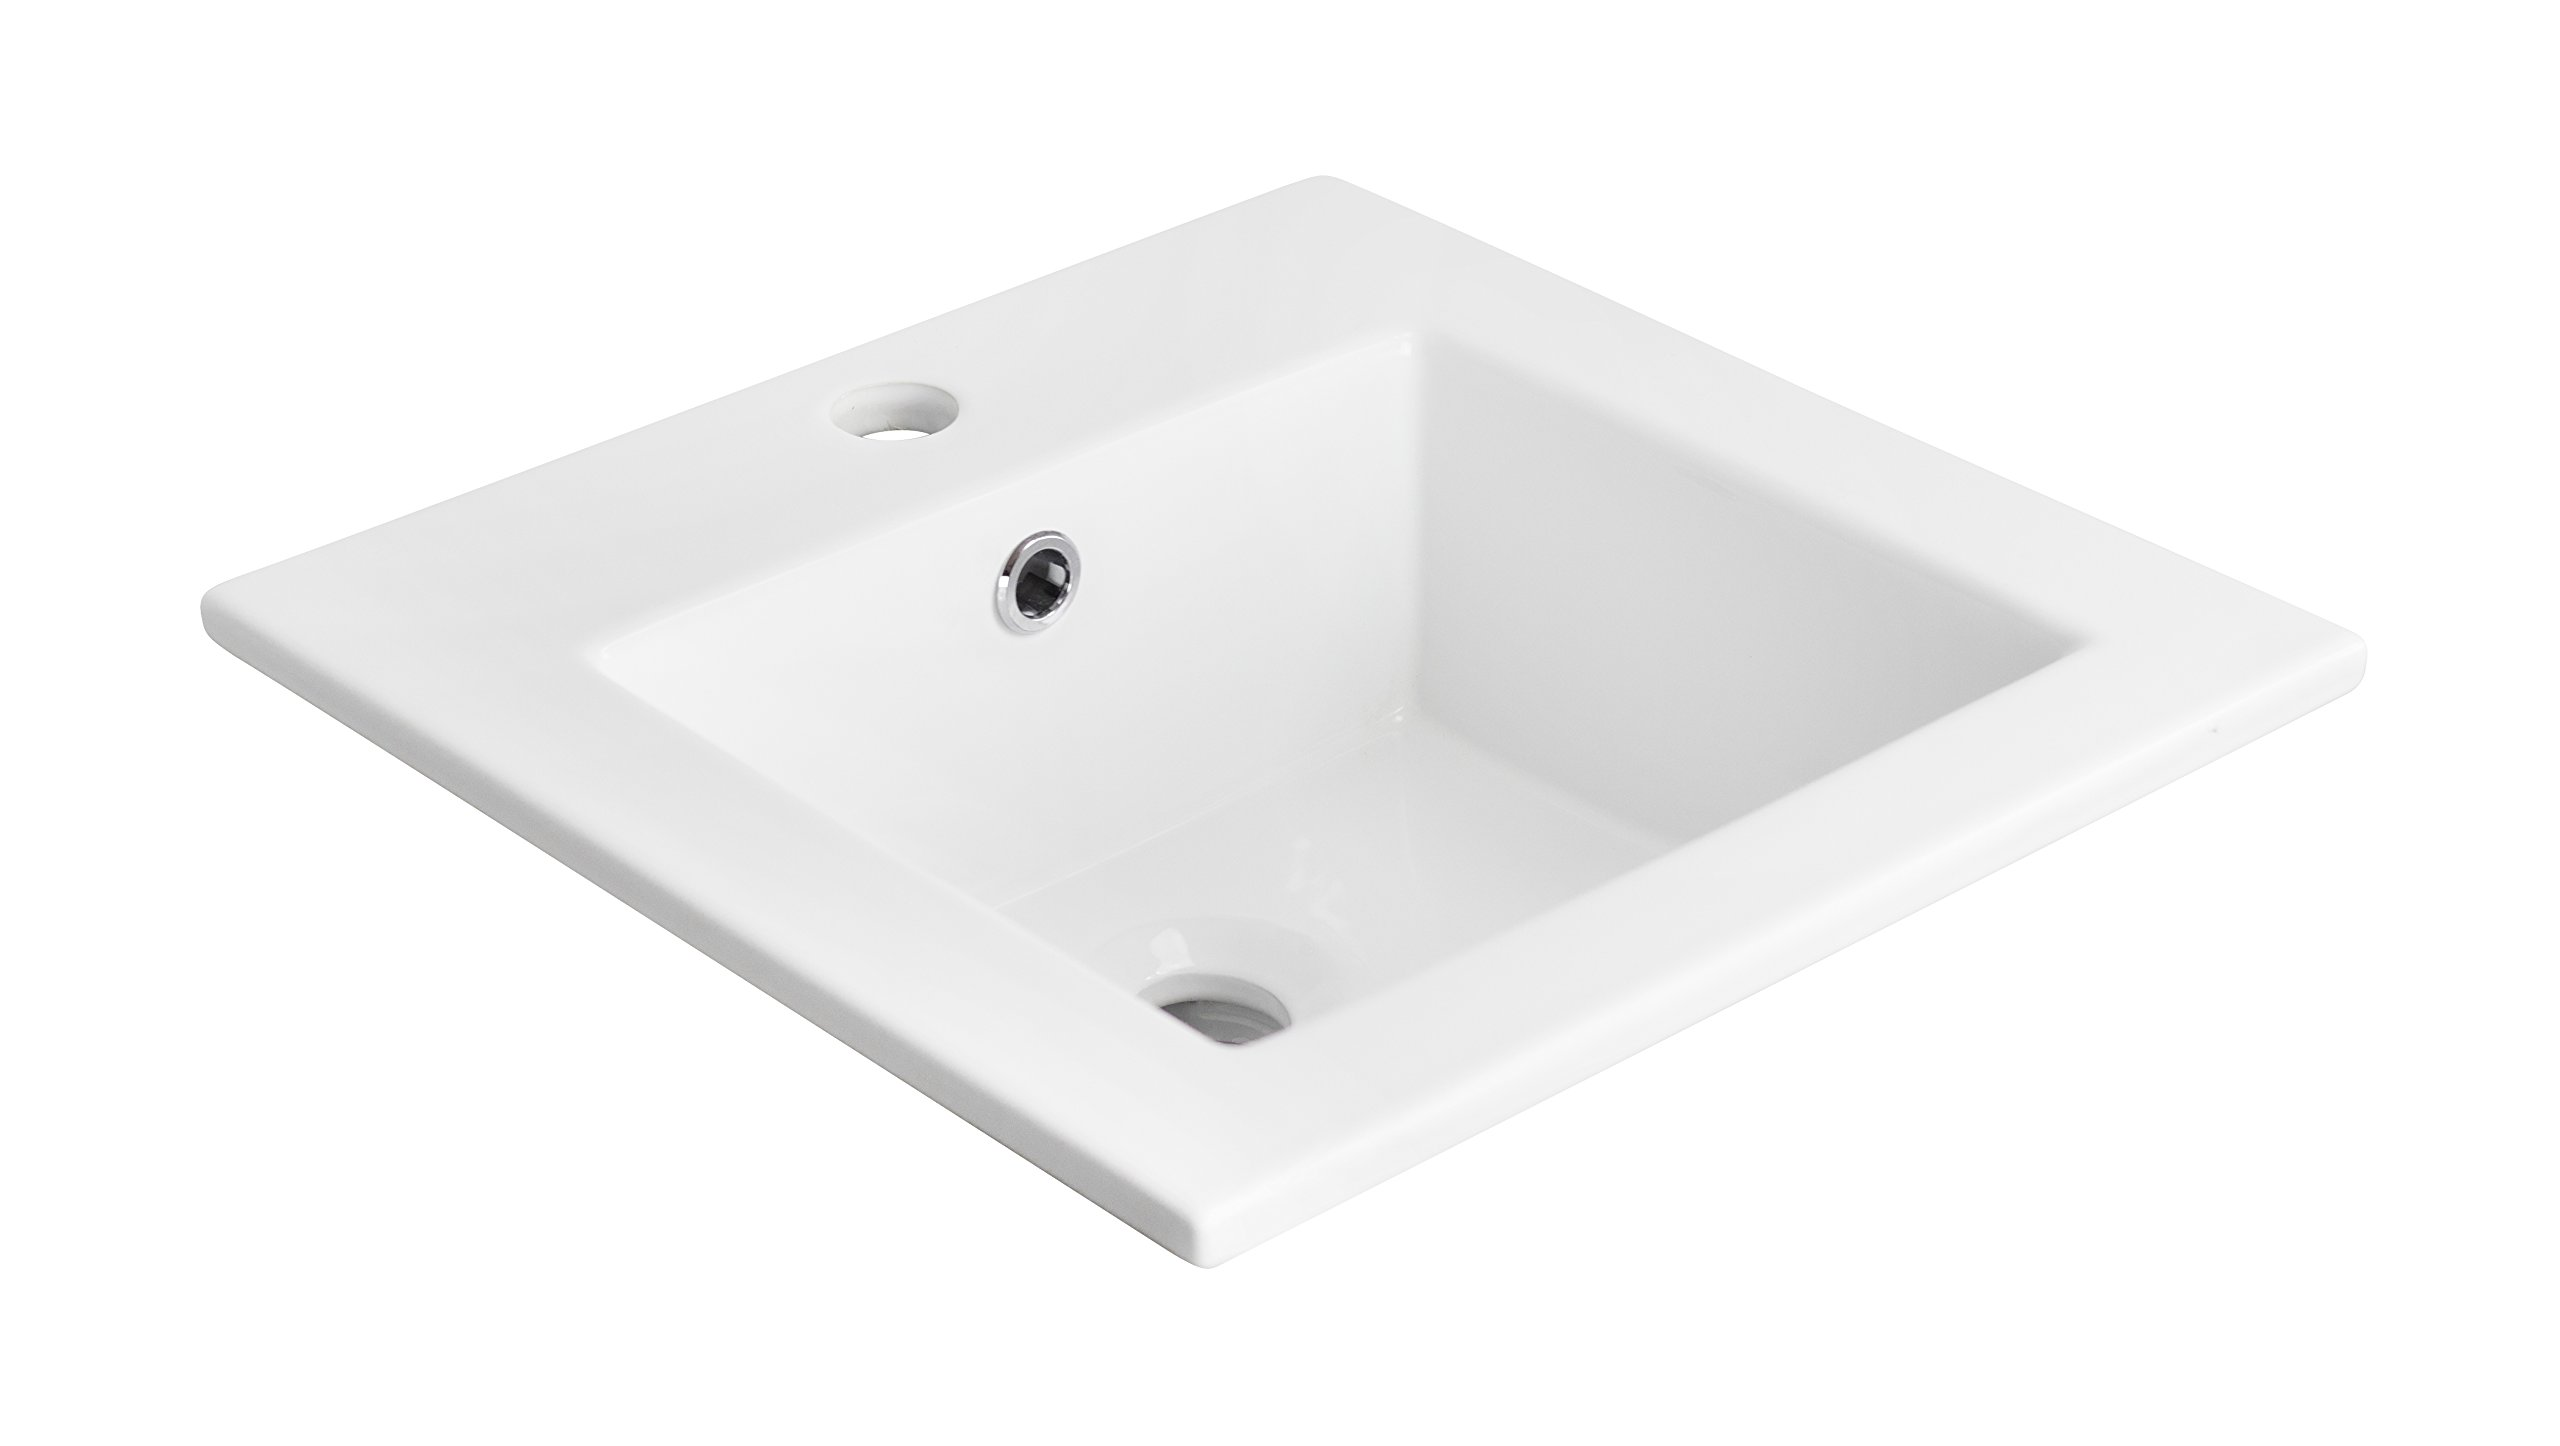 American Imaginations 647   21-Inch W X 18-Inch D White Ceramic Top with Single Hole by American Imaginations